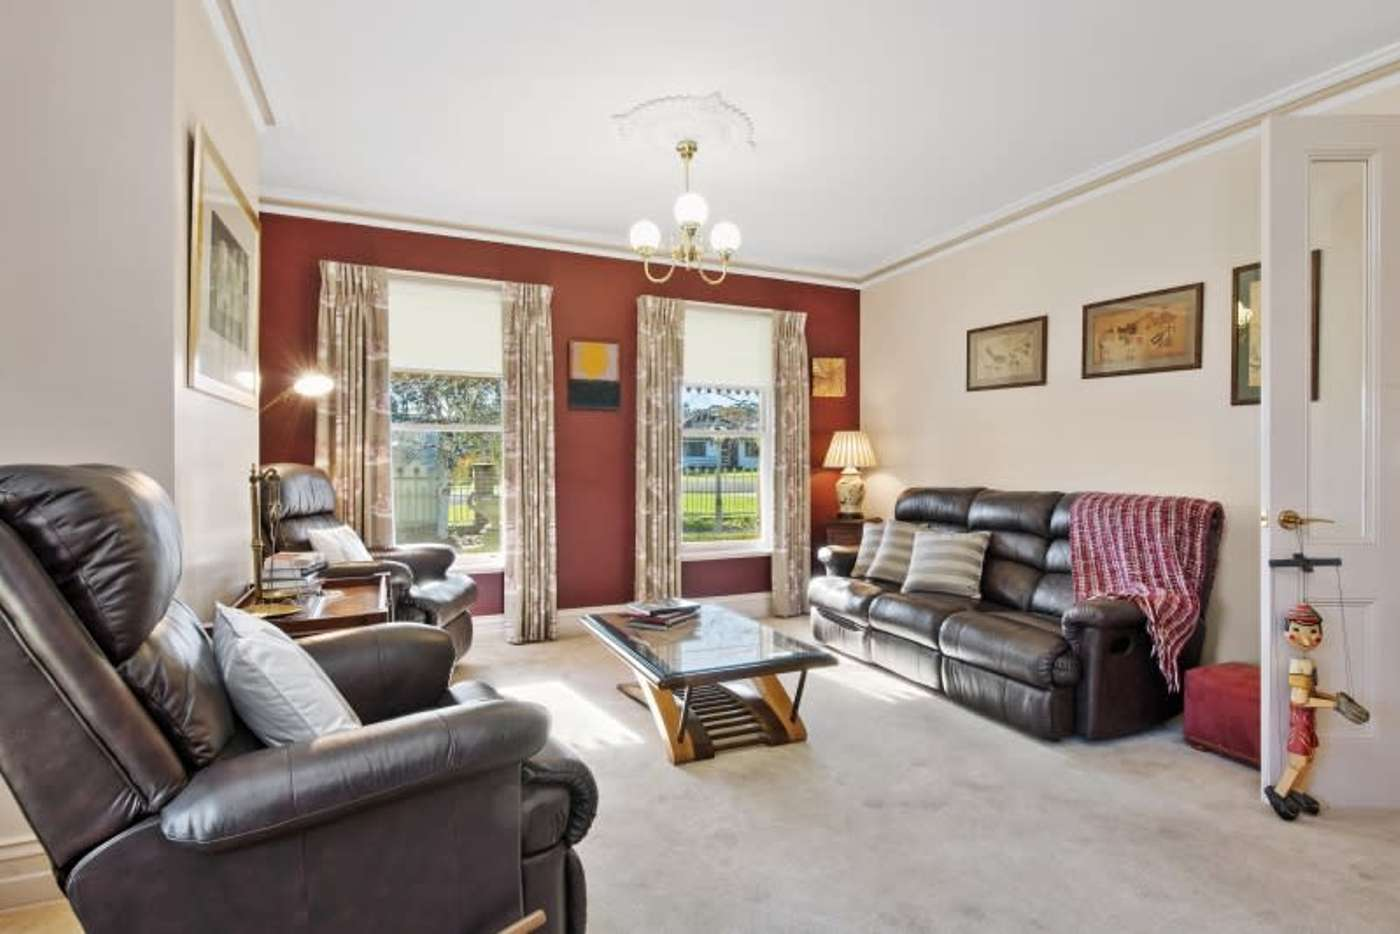 Sixth view of Homely house listing, 313 Eyre Street, Buninyong VIC 3357